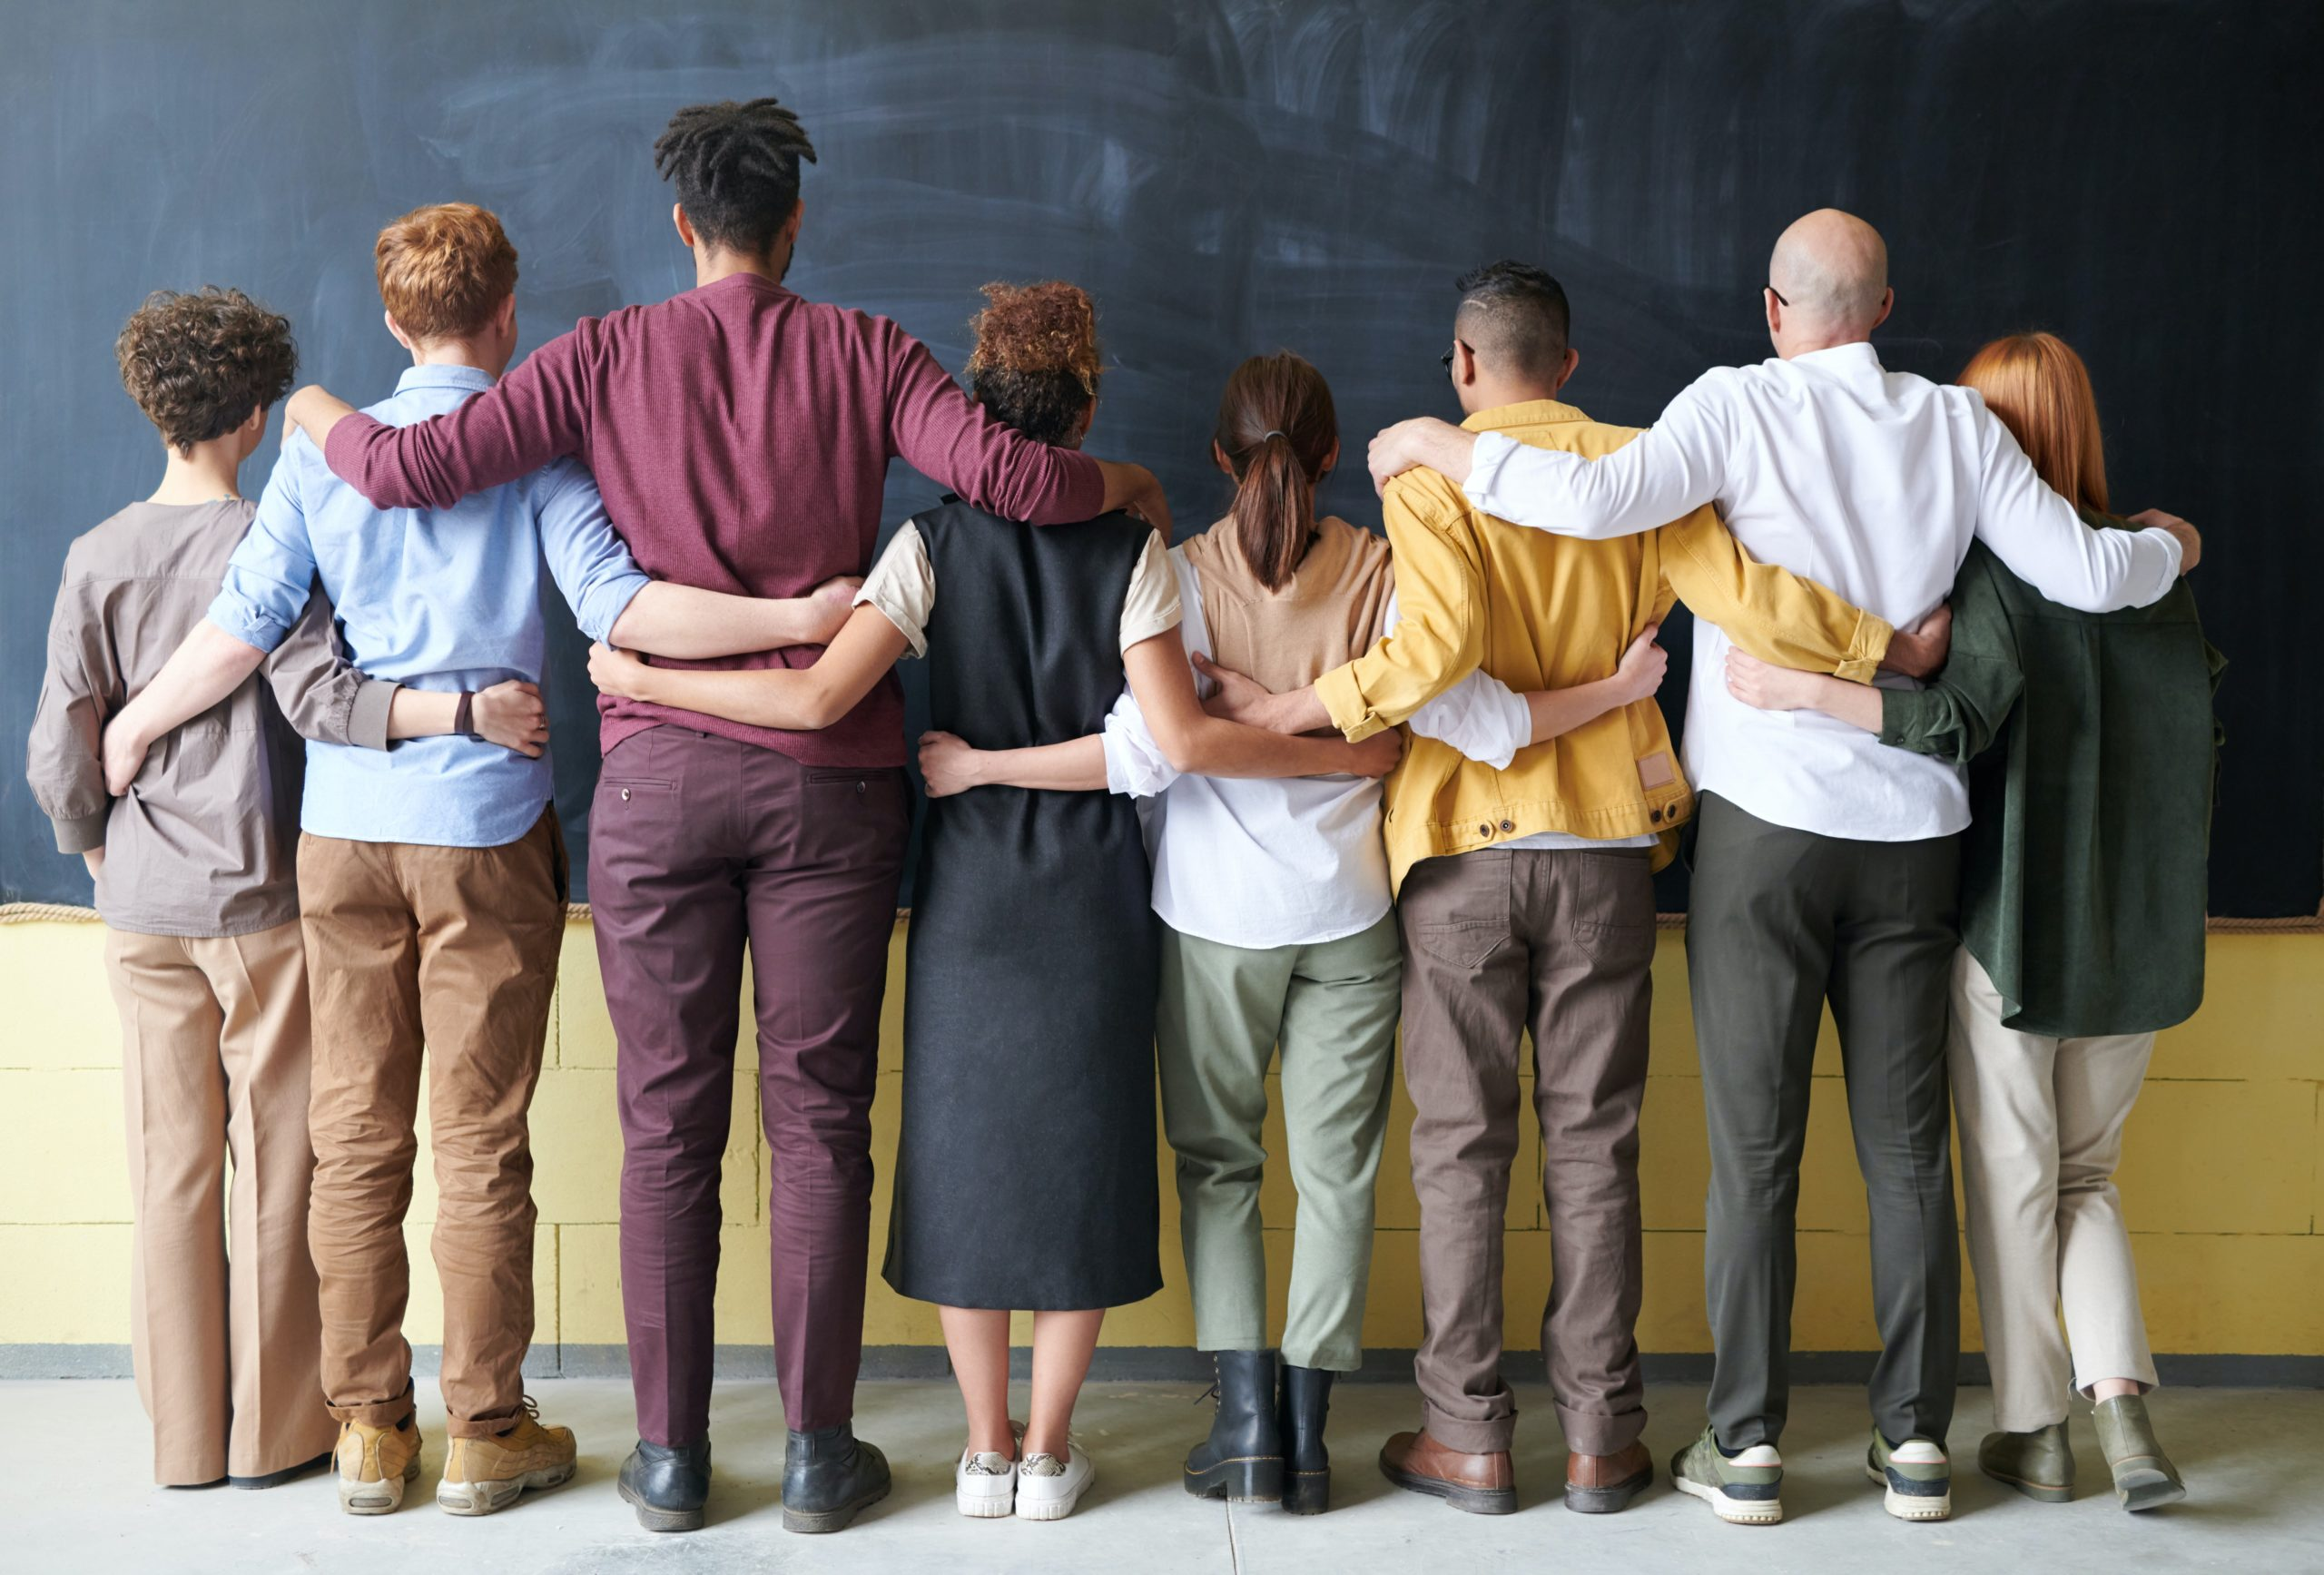 20 Ways Event And Wedding Pros Can Promote Diversity And Inclusion